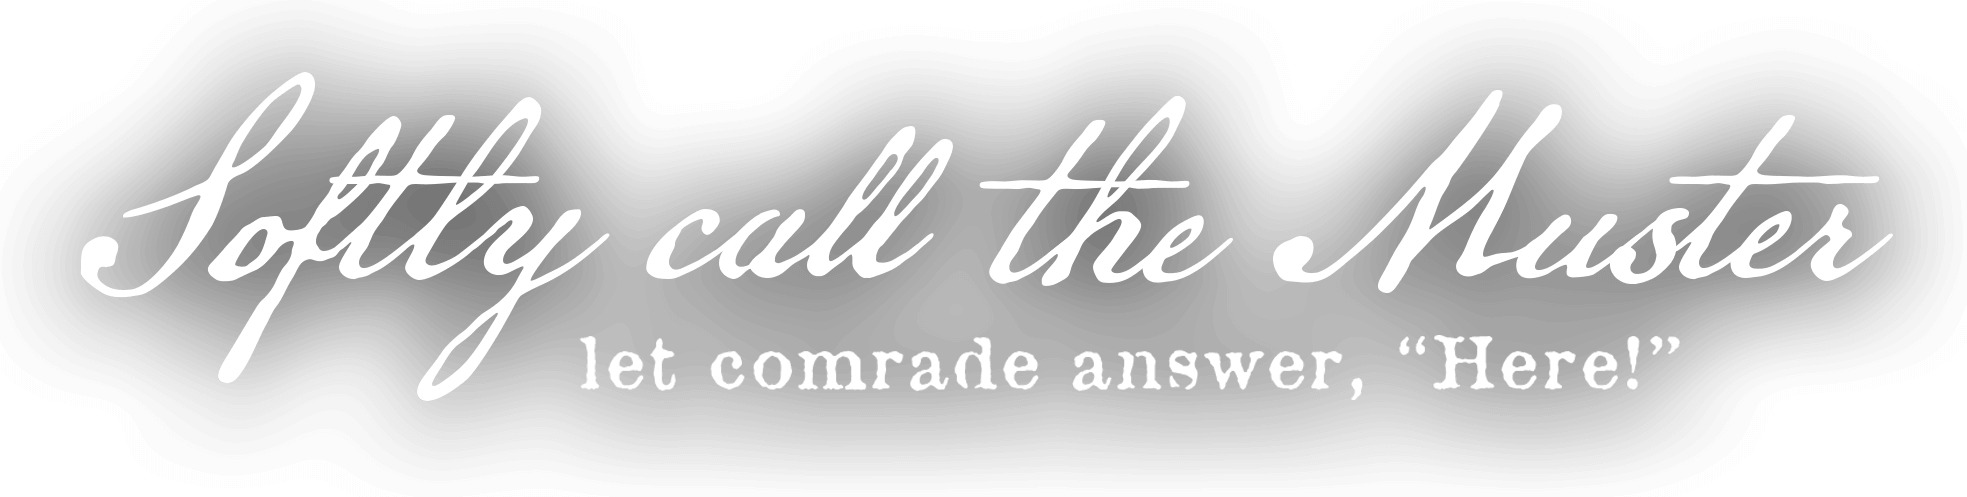 Softly call the Muster, let comrade answer 'Here!'